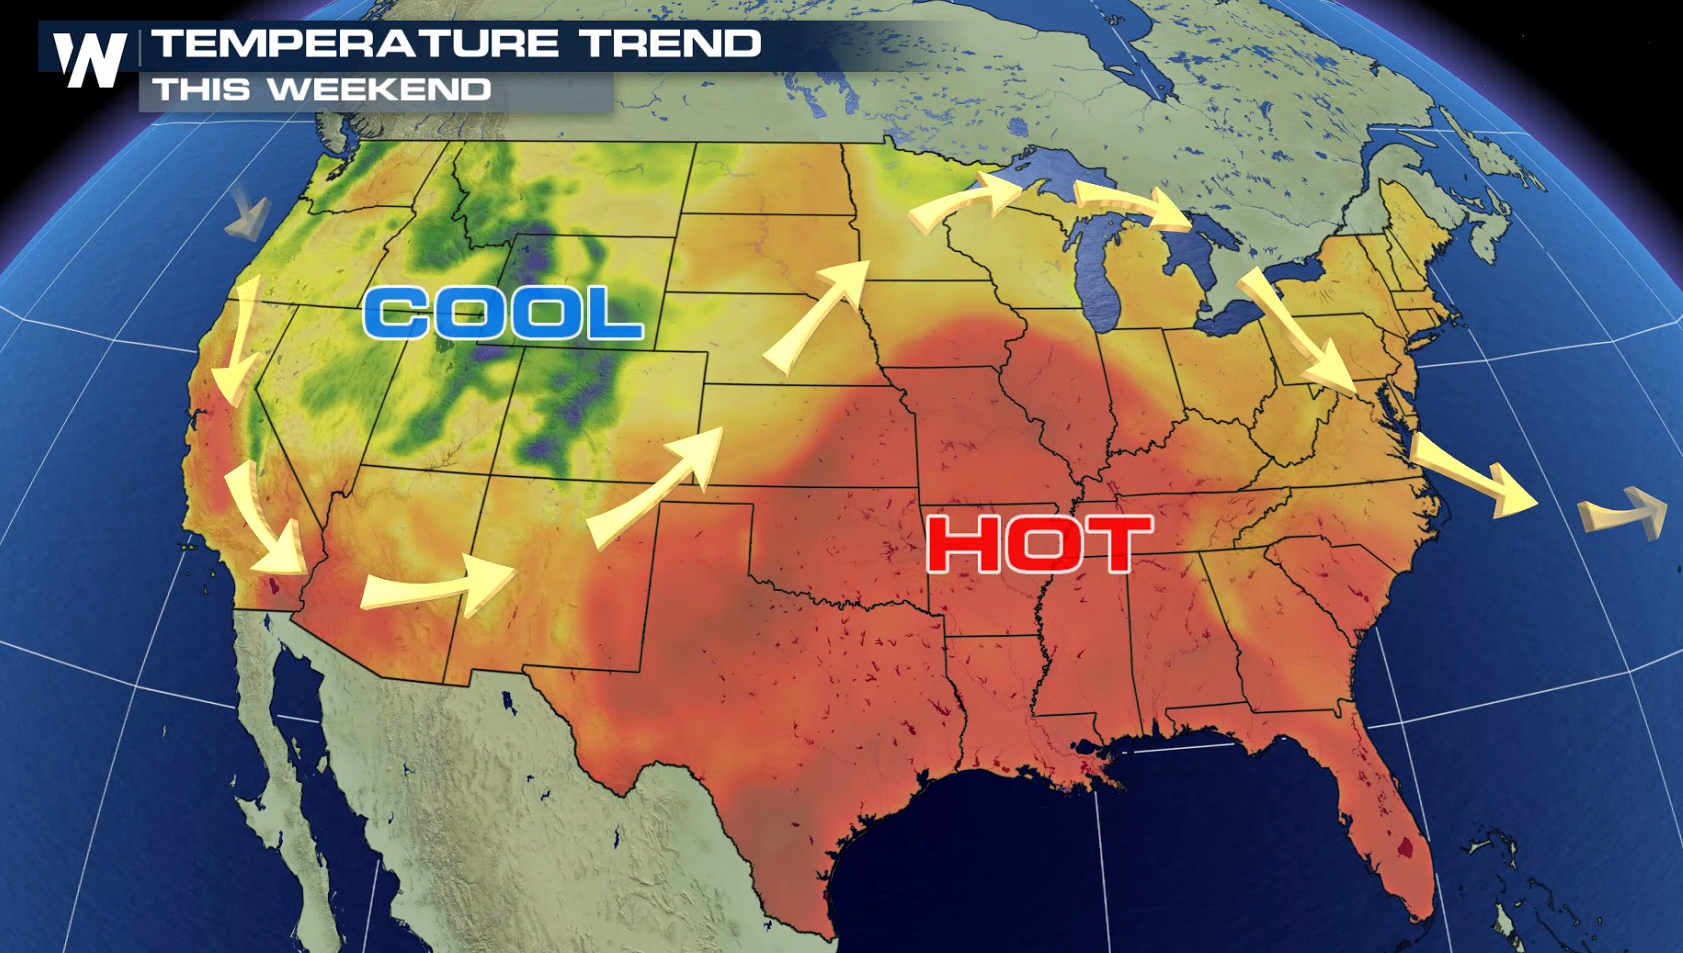 Heat in the Plains and Southeast into the Weekend